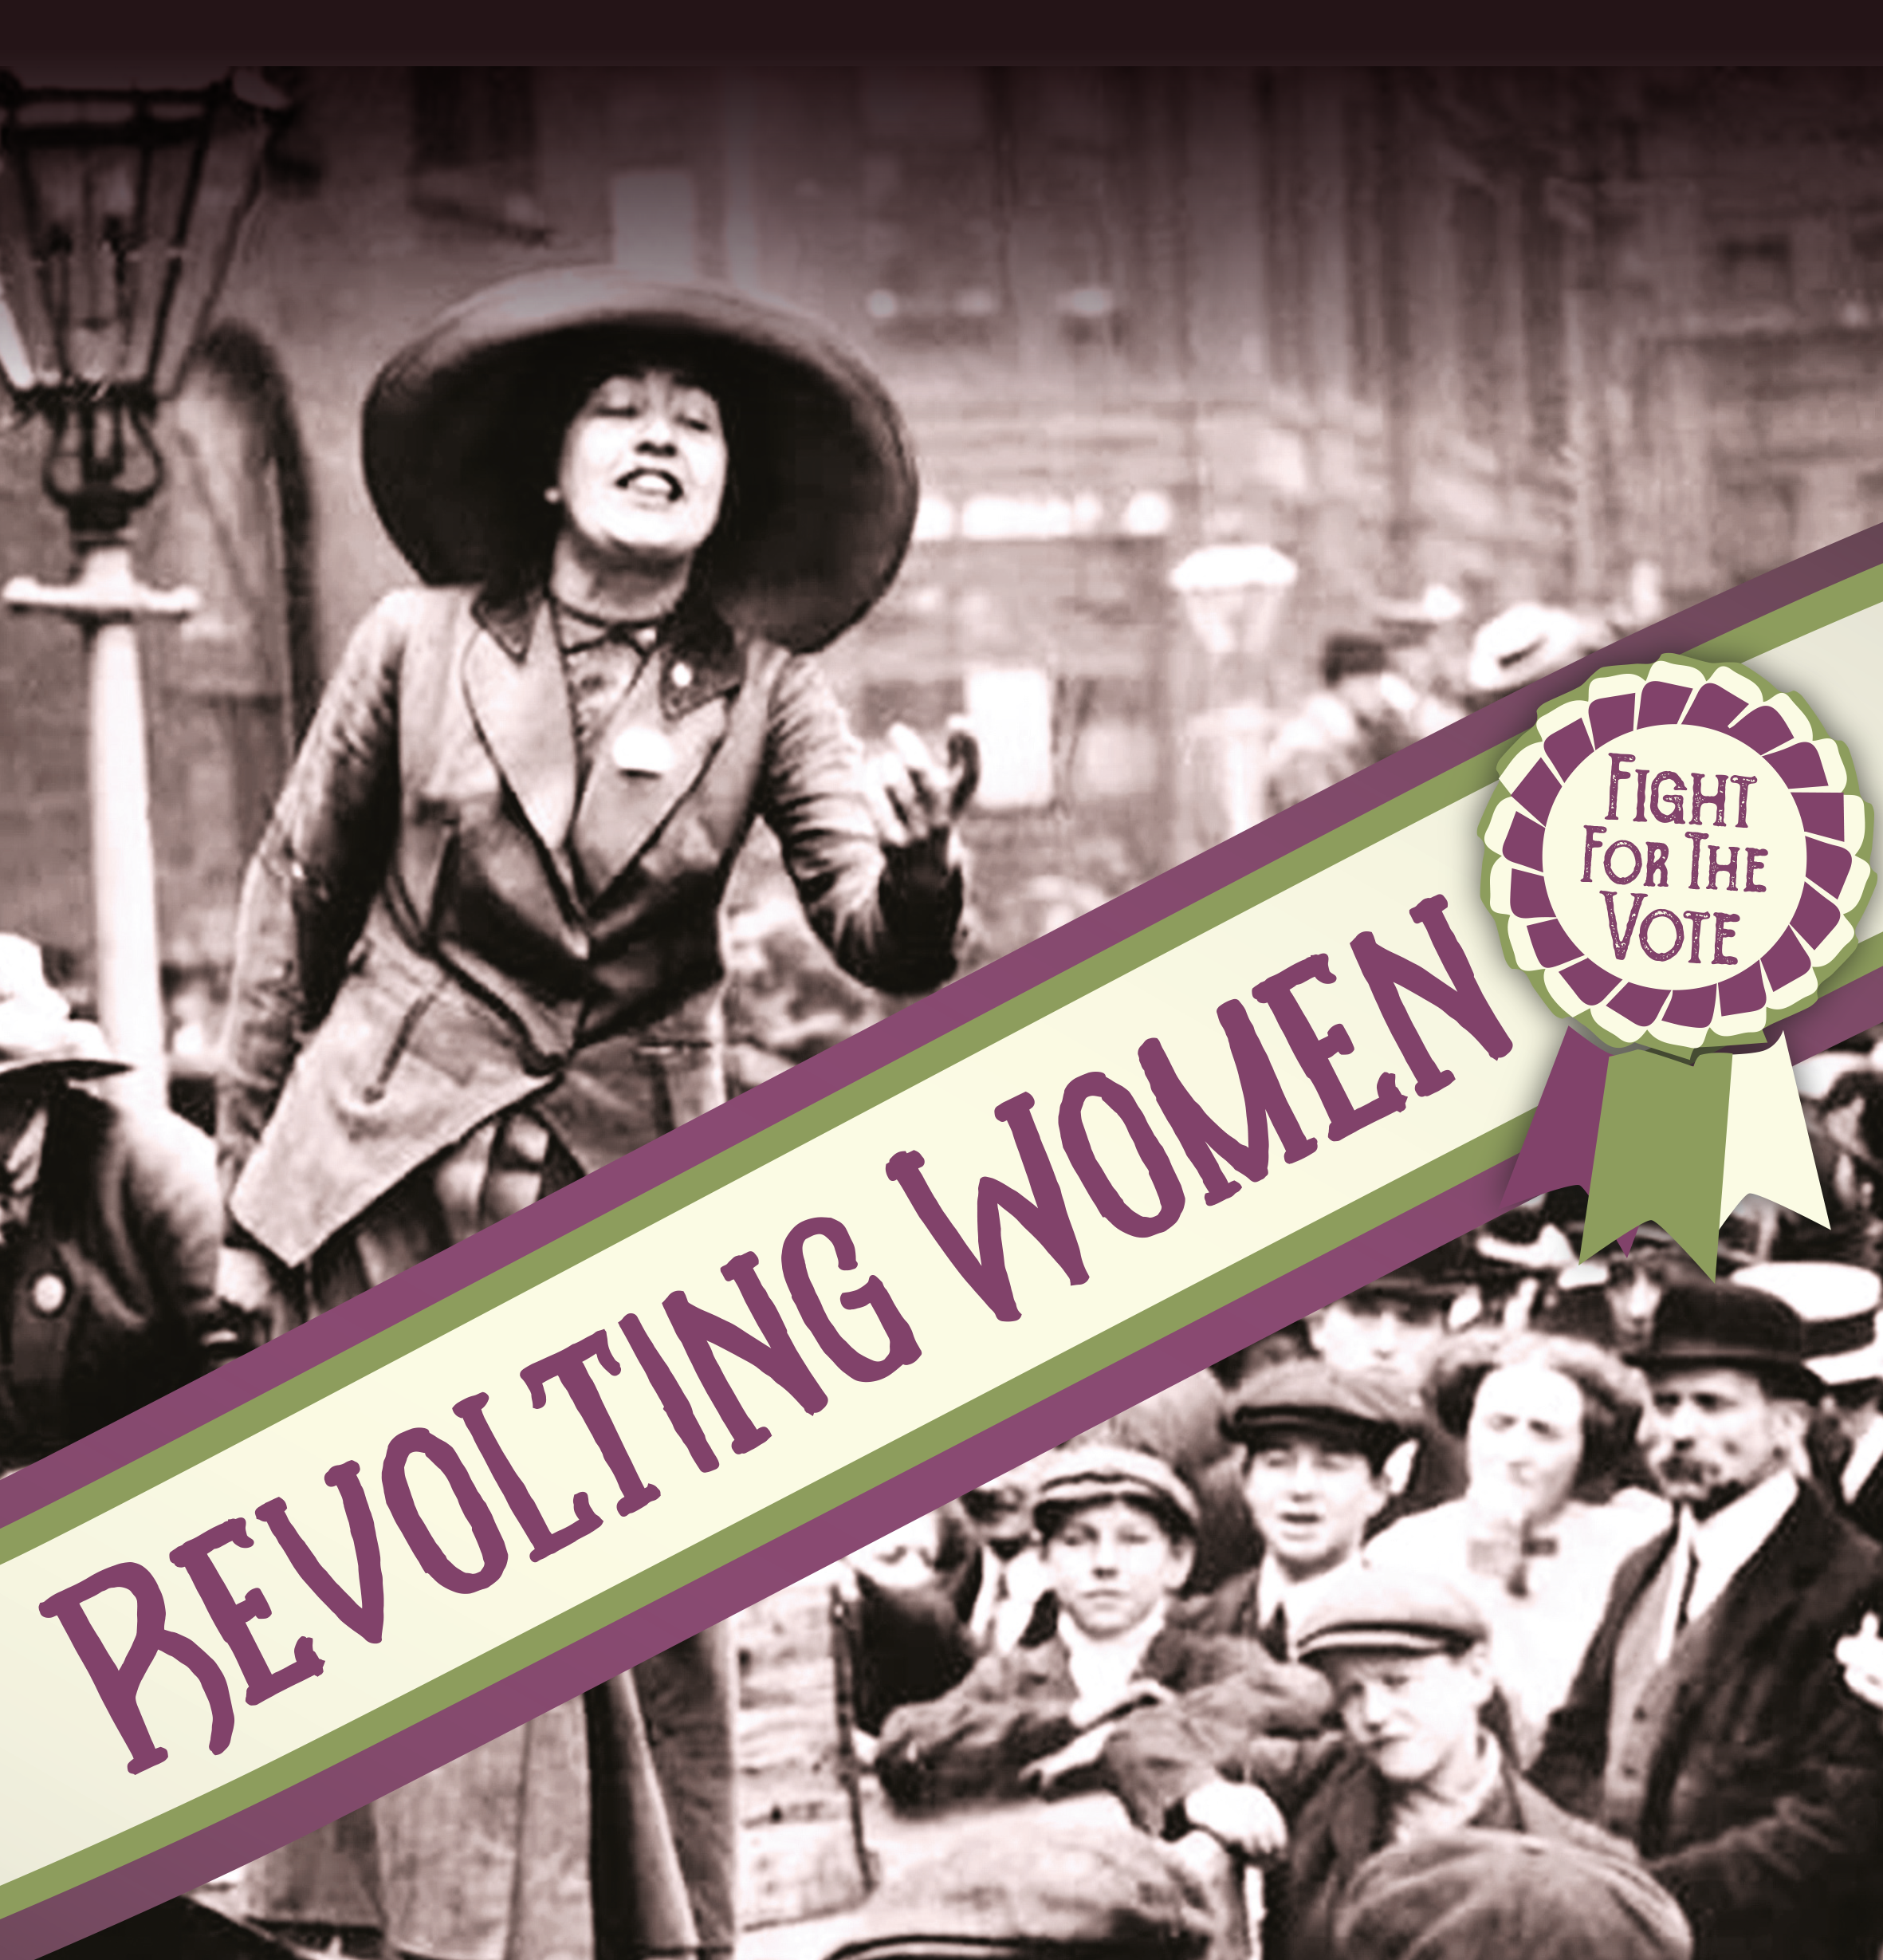 Revolting Women Poster image